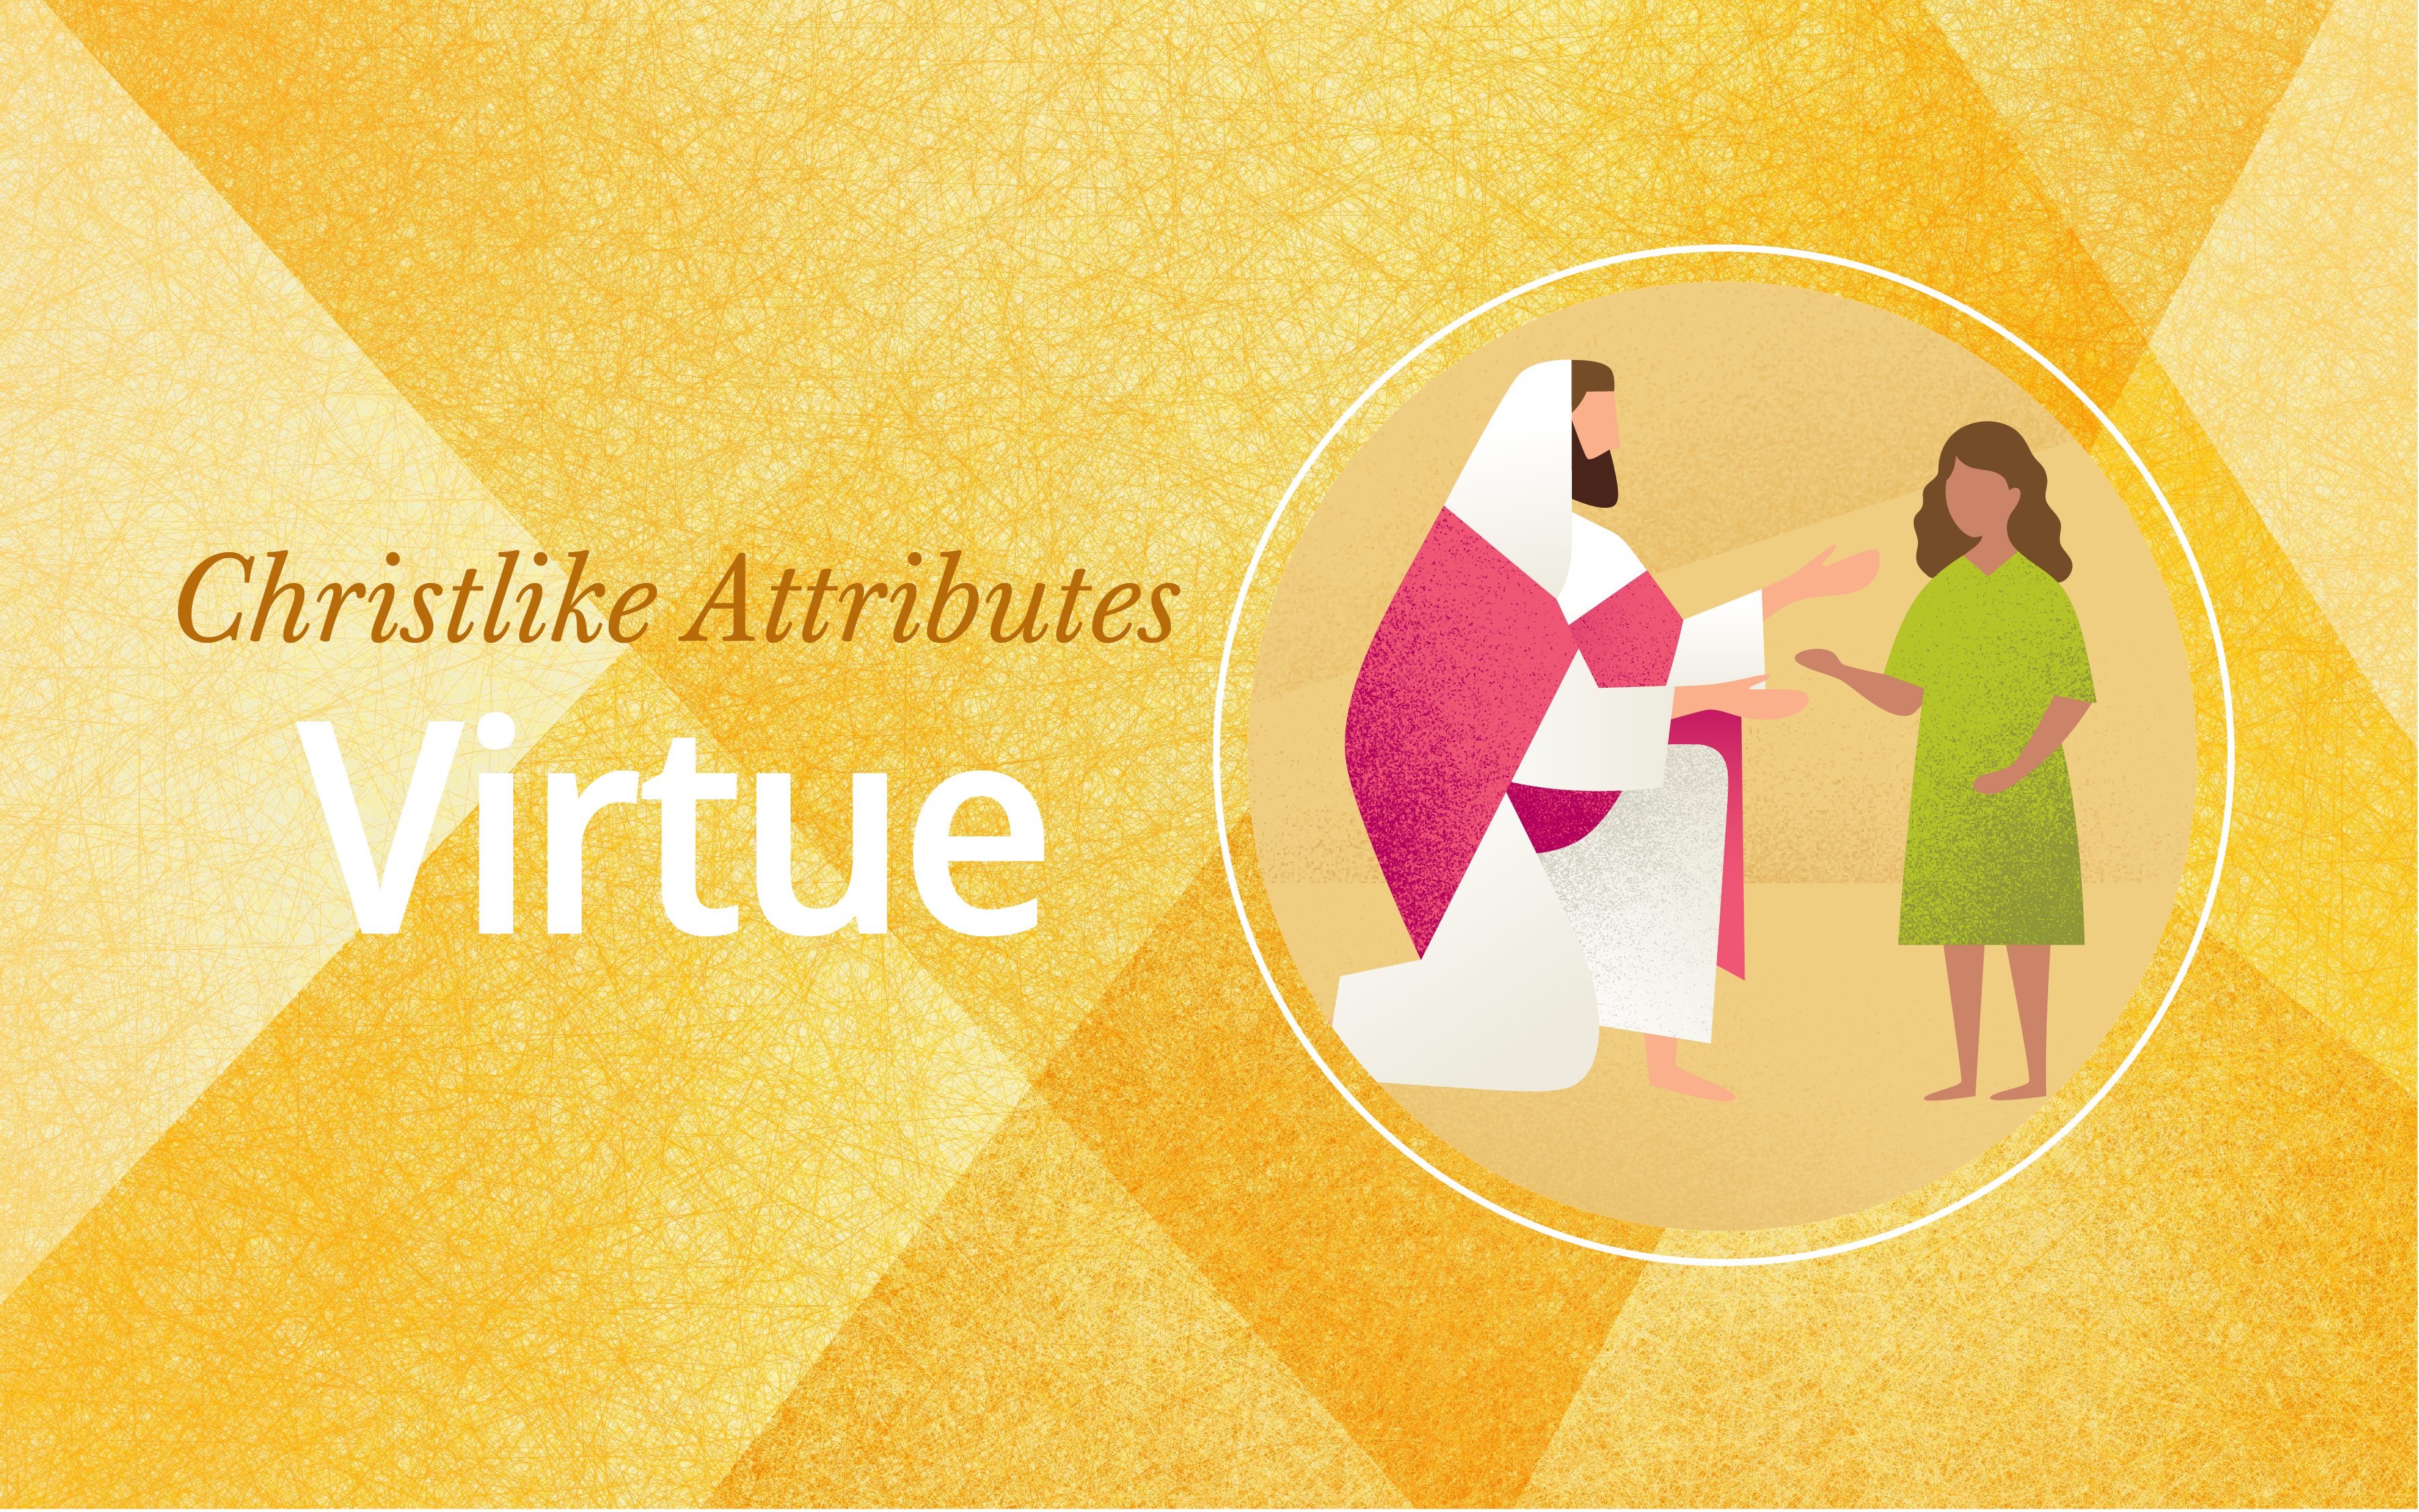 Christlike_Attributes-03